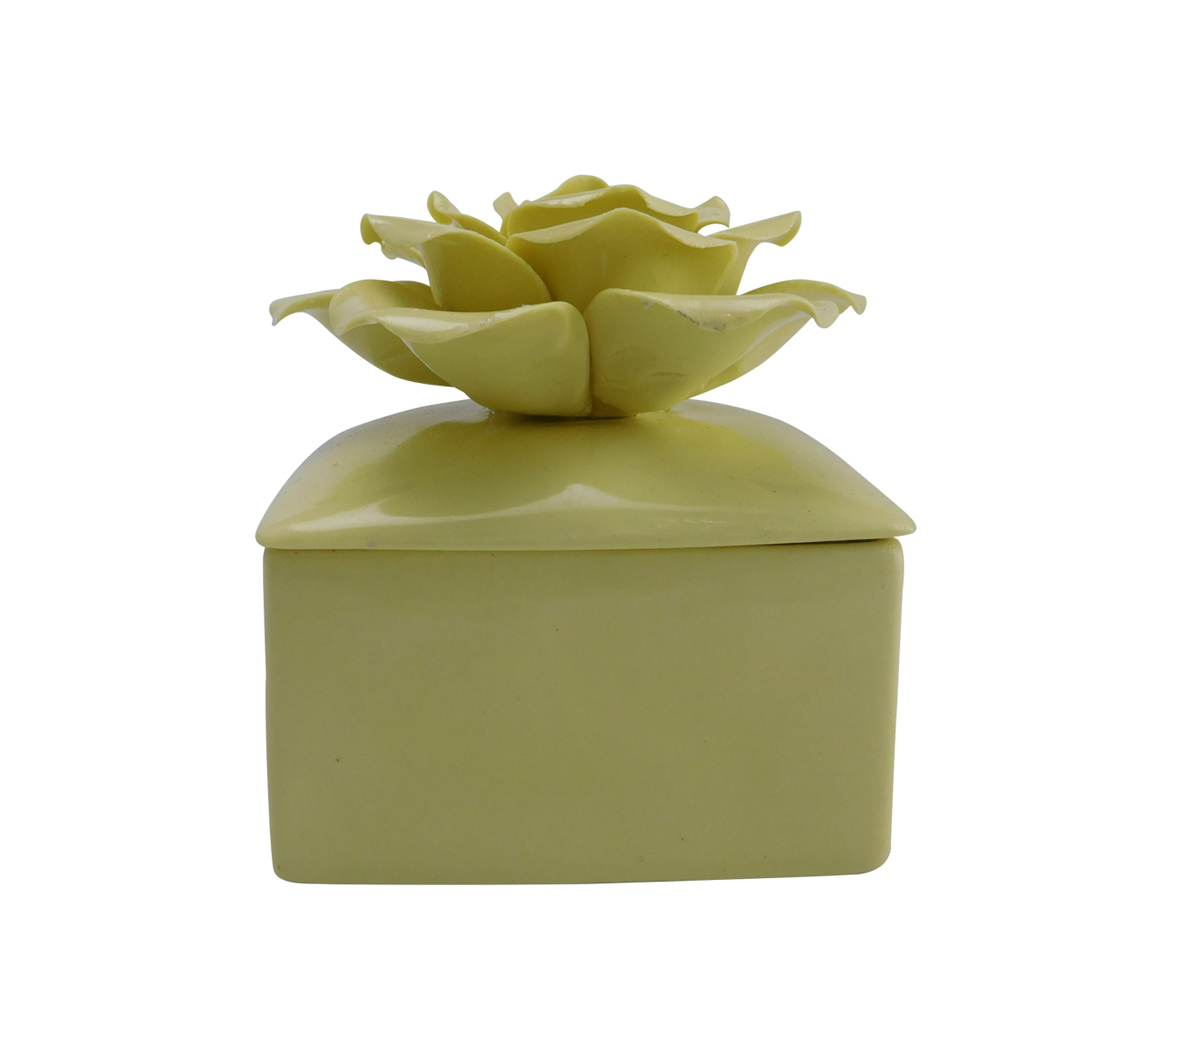 Avaria Fresh Plumeria Scented Ceramic Candle with Floral Lid-Yellow